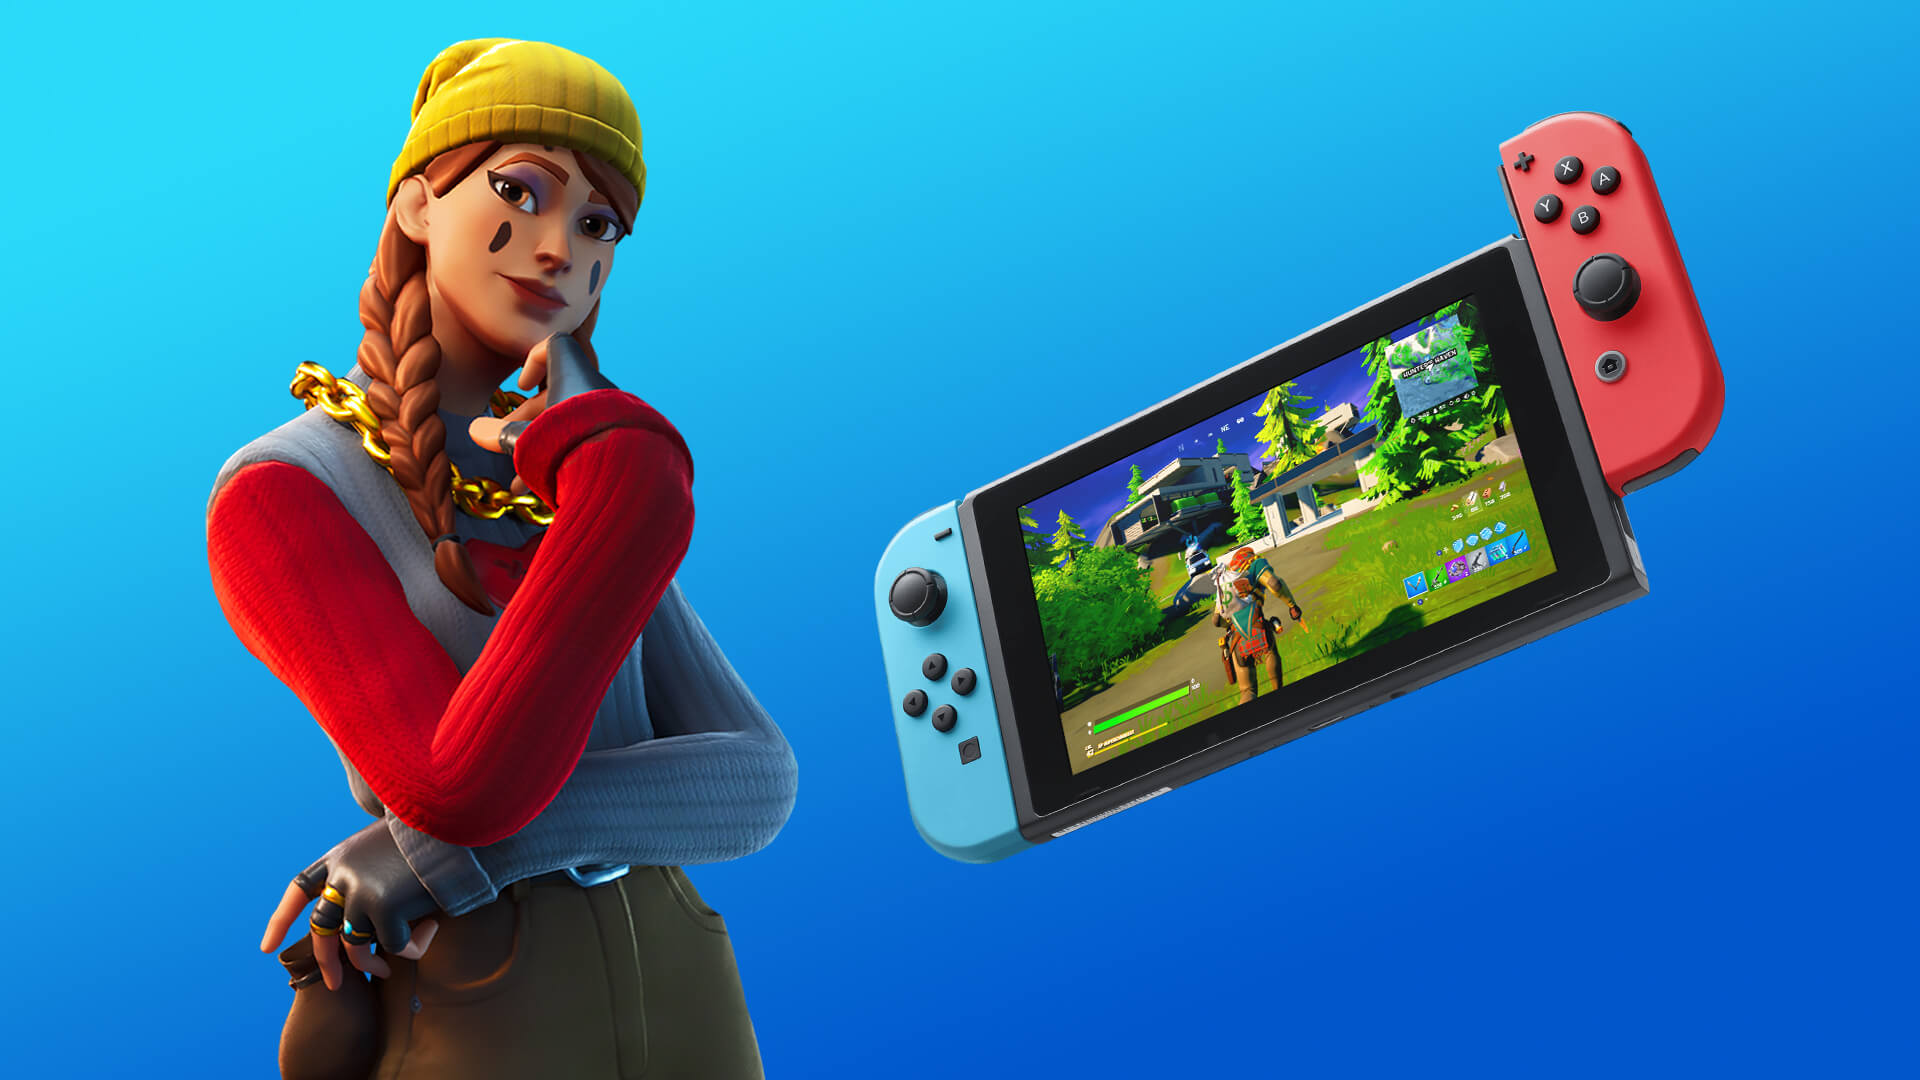 Alli and a Nintendo Switch, as they appear in Fortnite